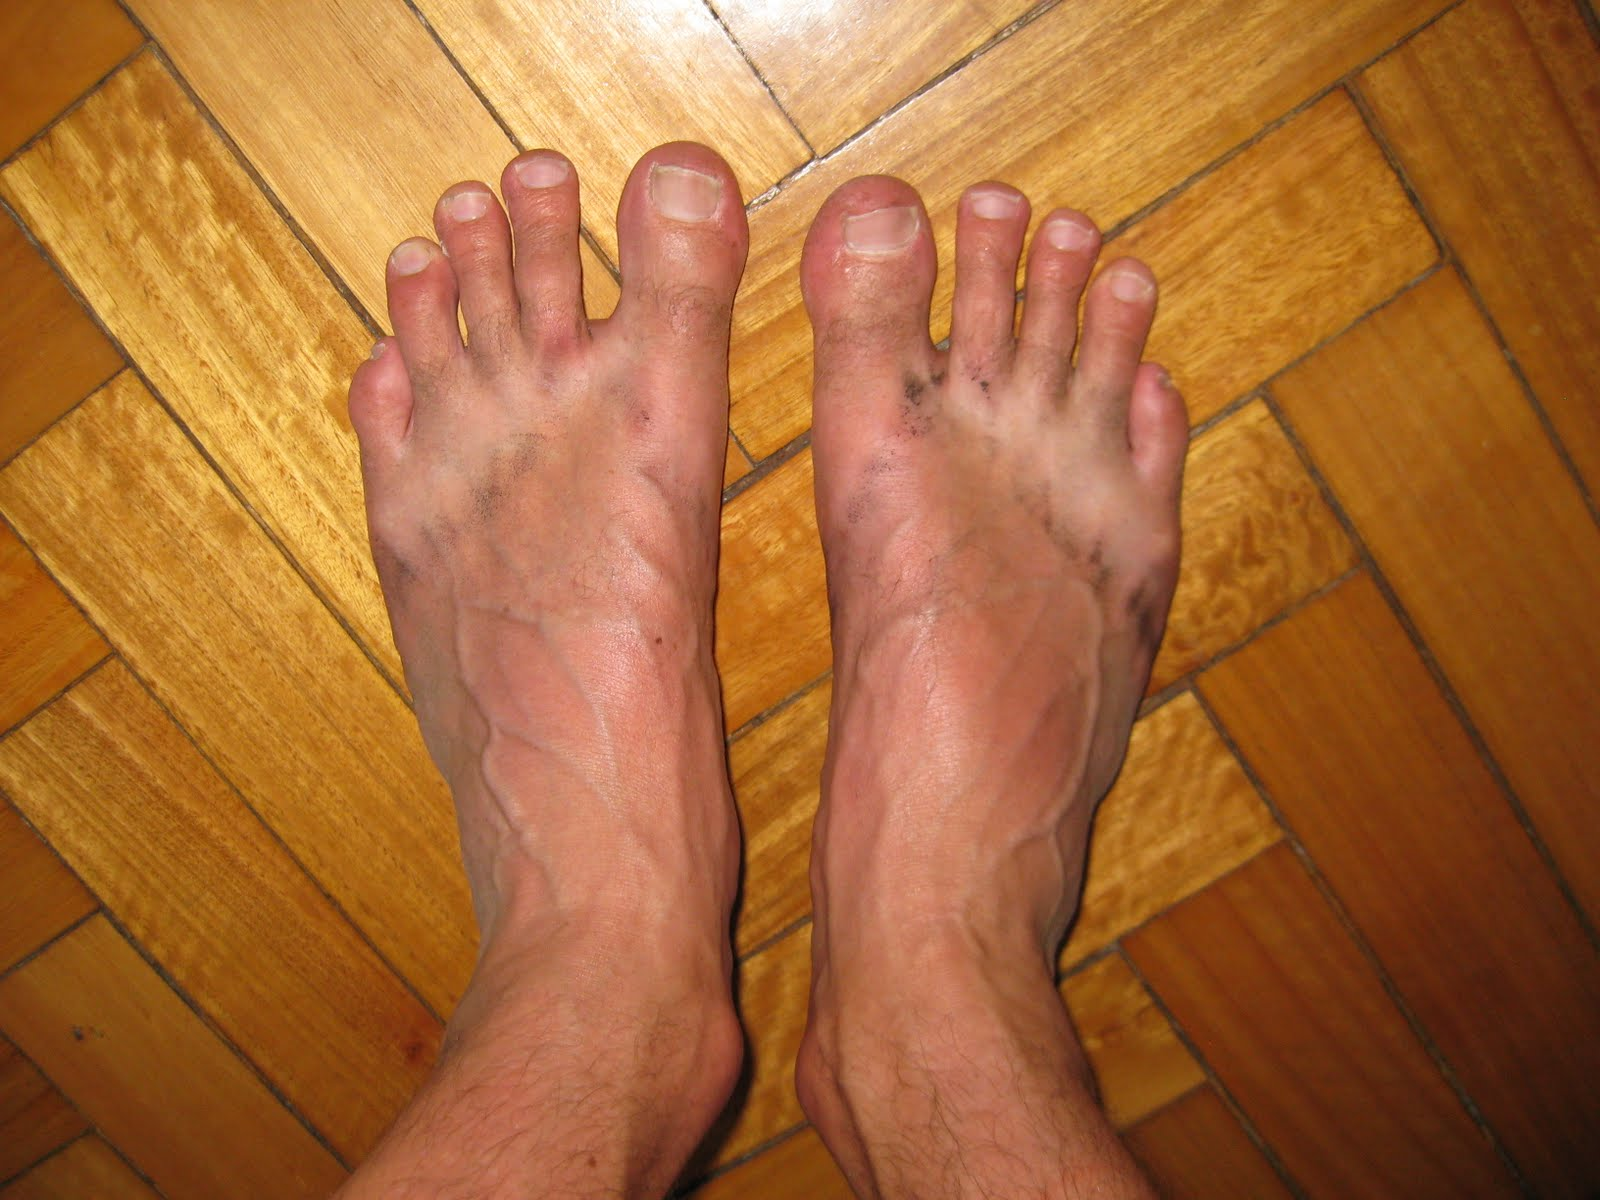 Ugly feet, after a days walking